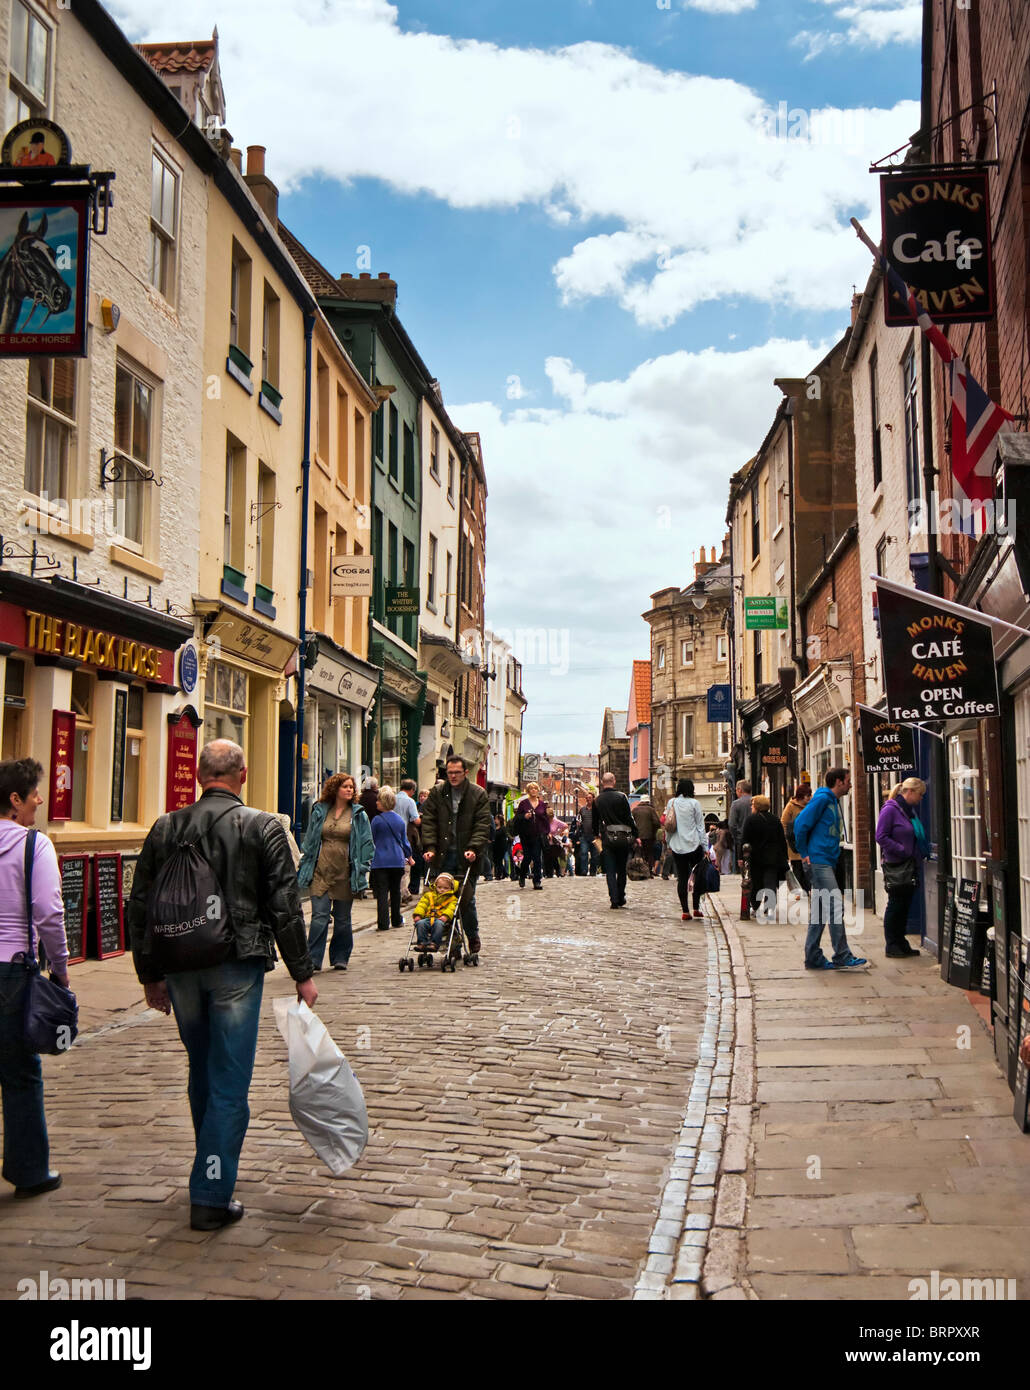 High street with people shopping in Whitby high street, North Yorkshire, England, UK - Stock Image